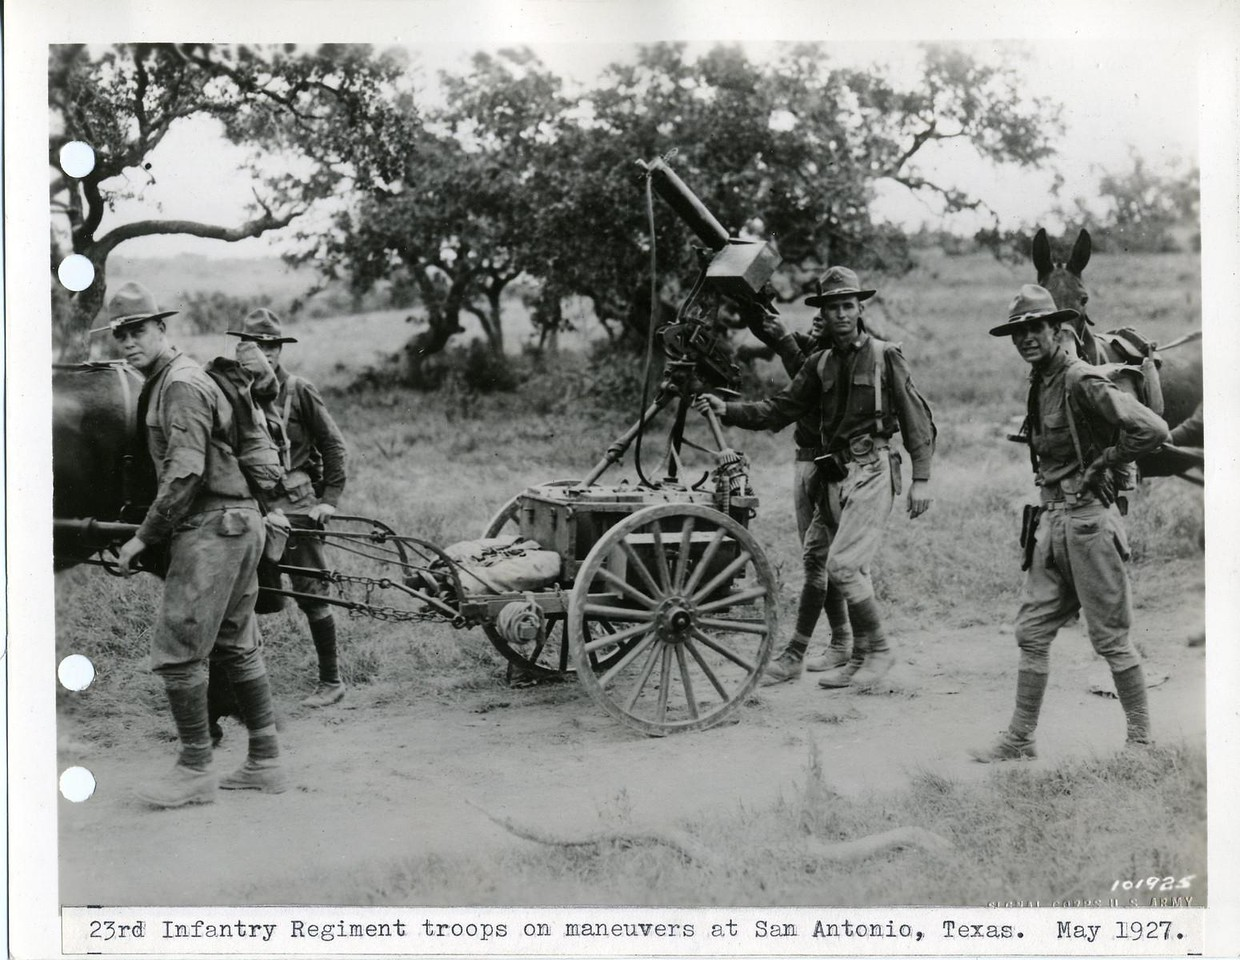 23rd Infantry Regiment troops on maneuvers at San Antonio, Texas. <br /> <br /> May 1927<br /> <br /> No. 101925<br /> <br /> Dr. 38-A San Antonio<br /> <br /> 6x8 Neg.  File Copy<br /> <br /> Original photo (Craig Johnson Collection)